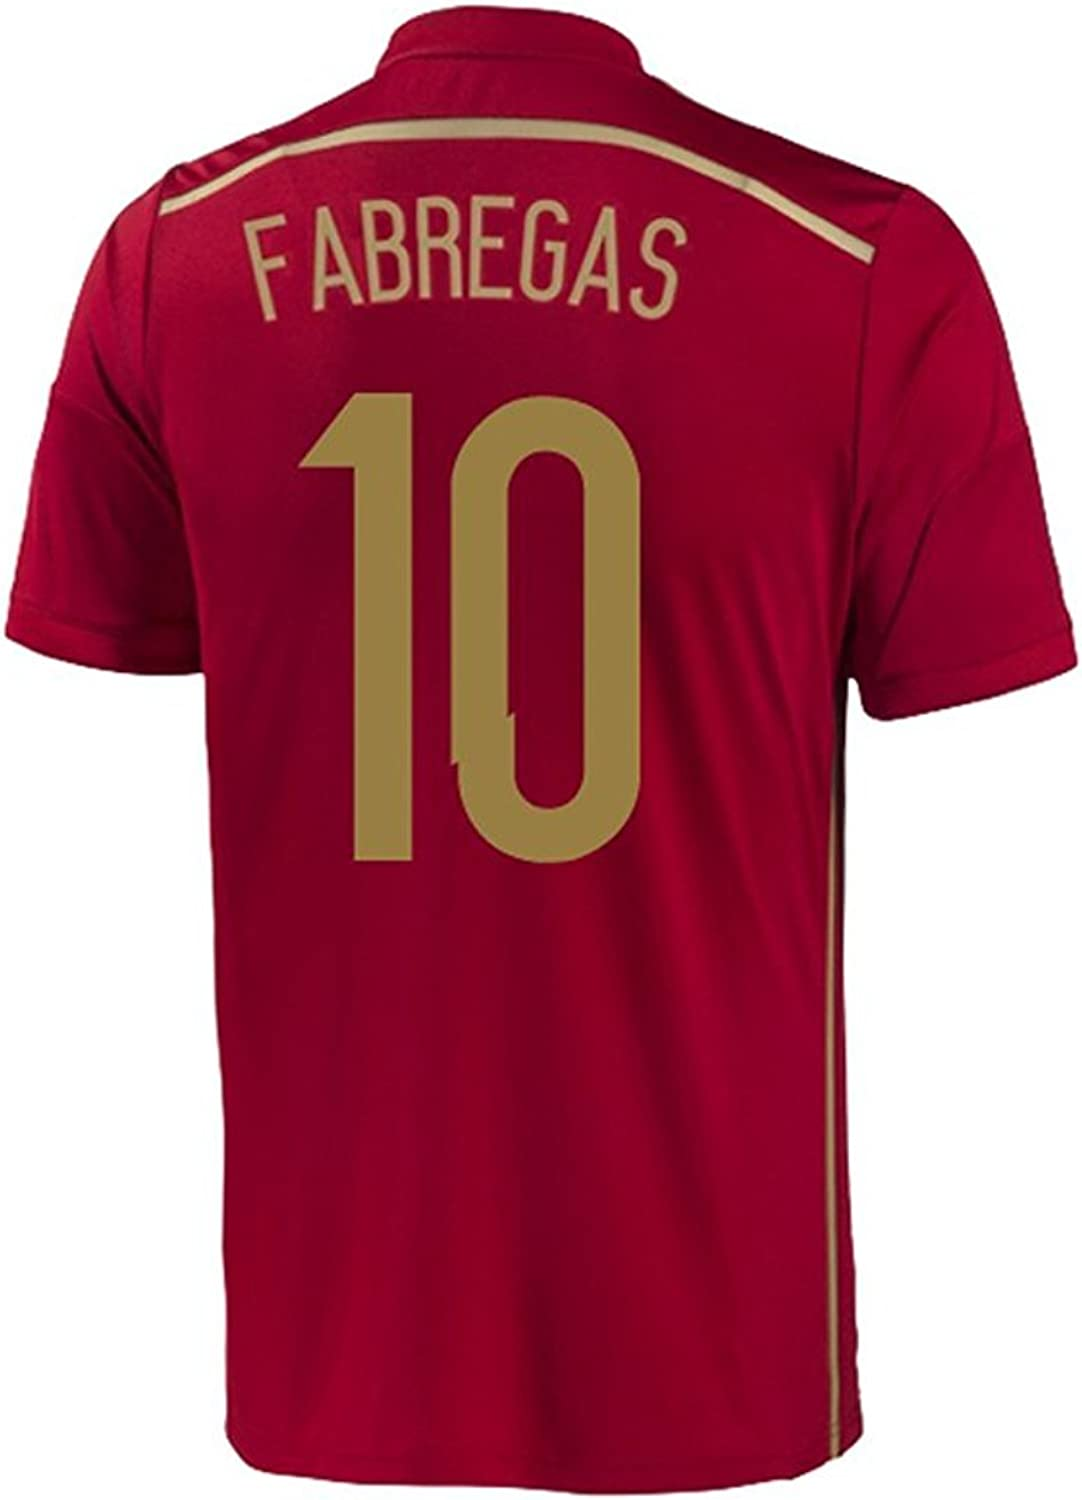 Adidas FABREGAS  10 Spain Home Jersey World Cup 2014 YOUTH